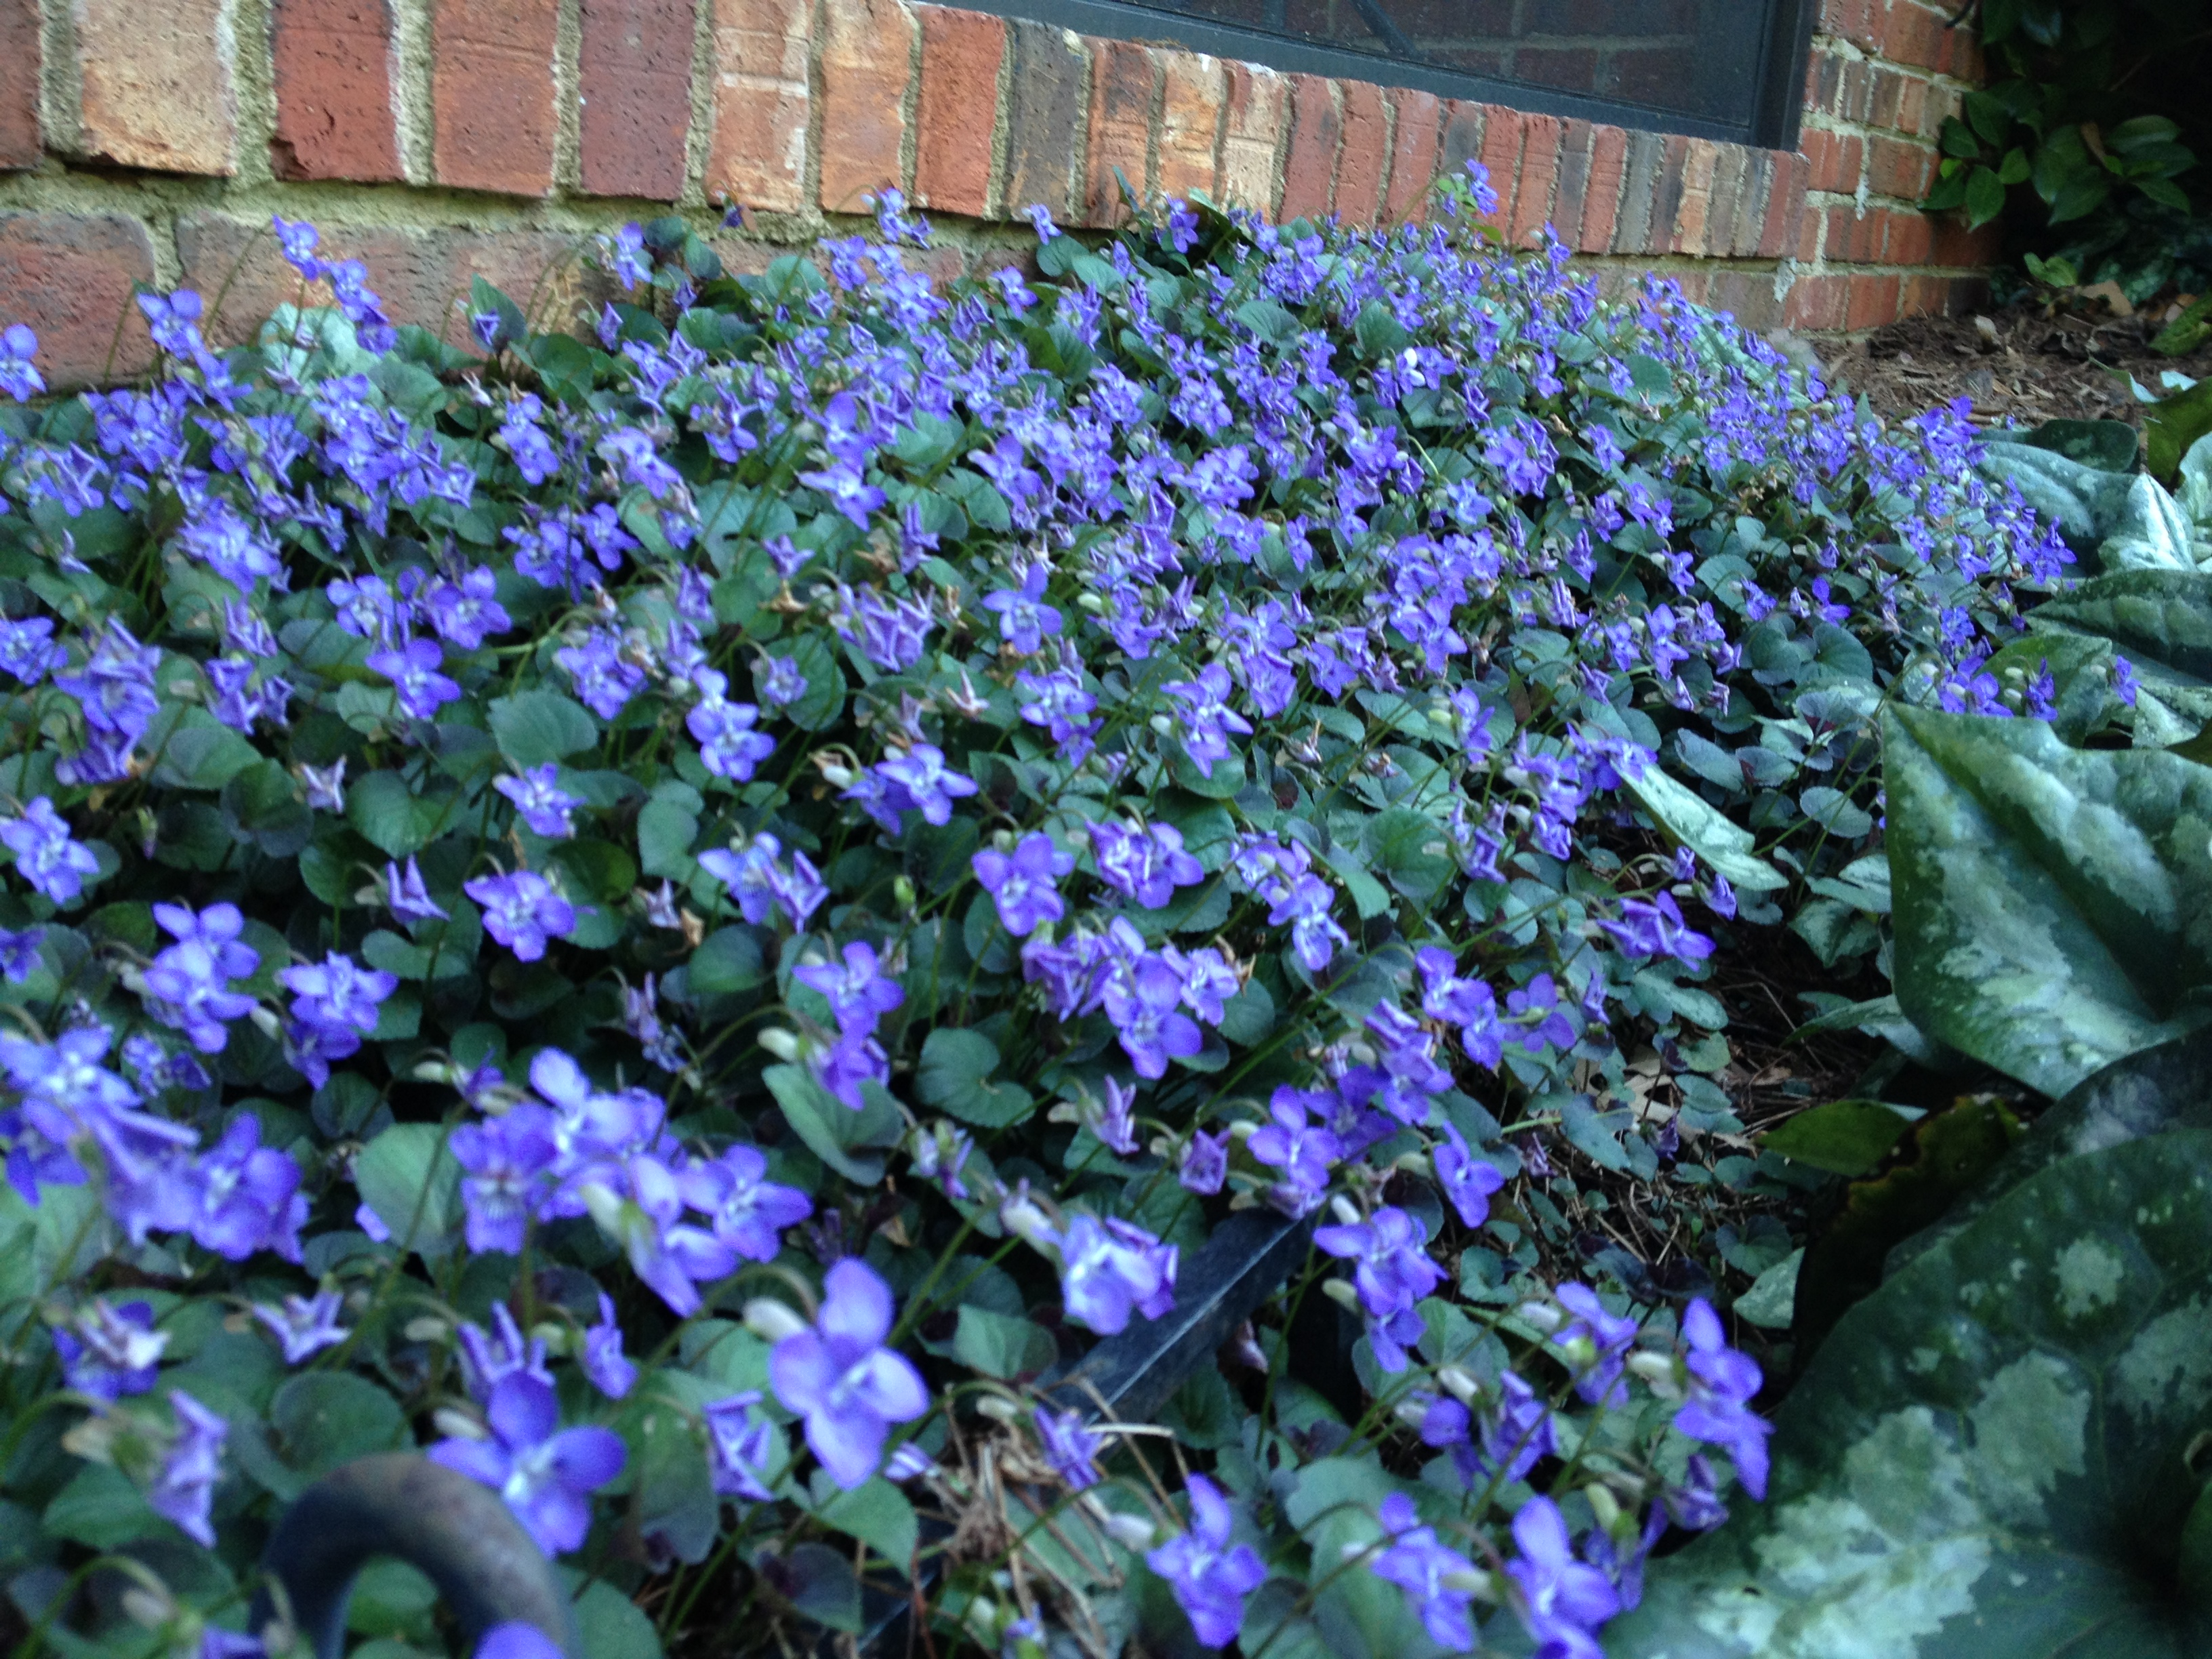 Flowering shrub tailored horticulture perennial violas in flower now at a customers back porch loves shade spreads mightylinksfo